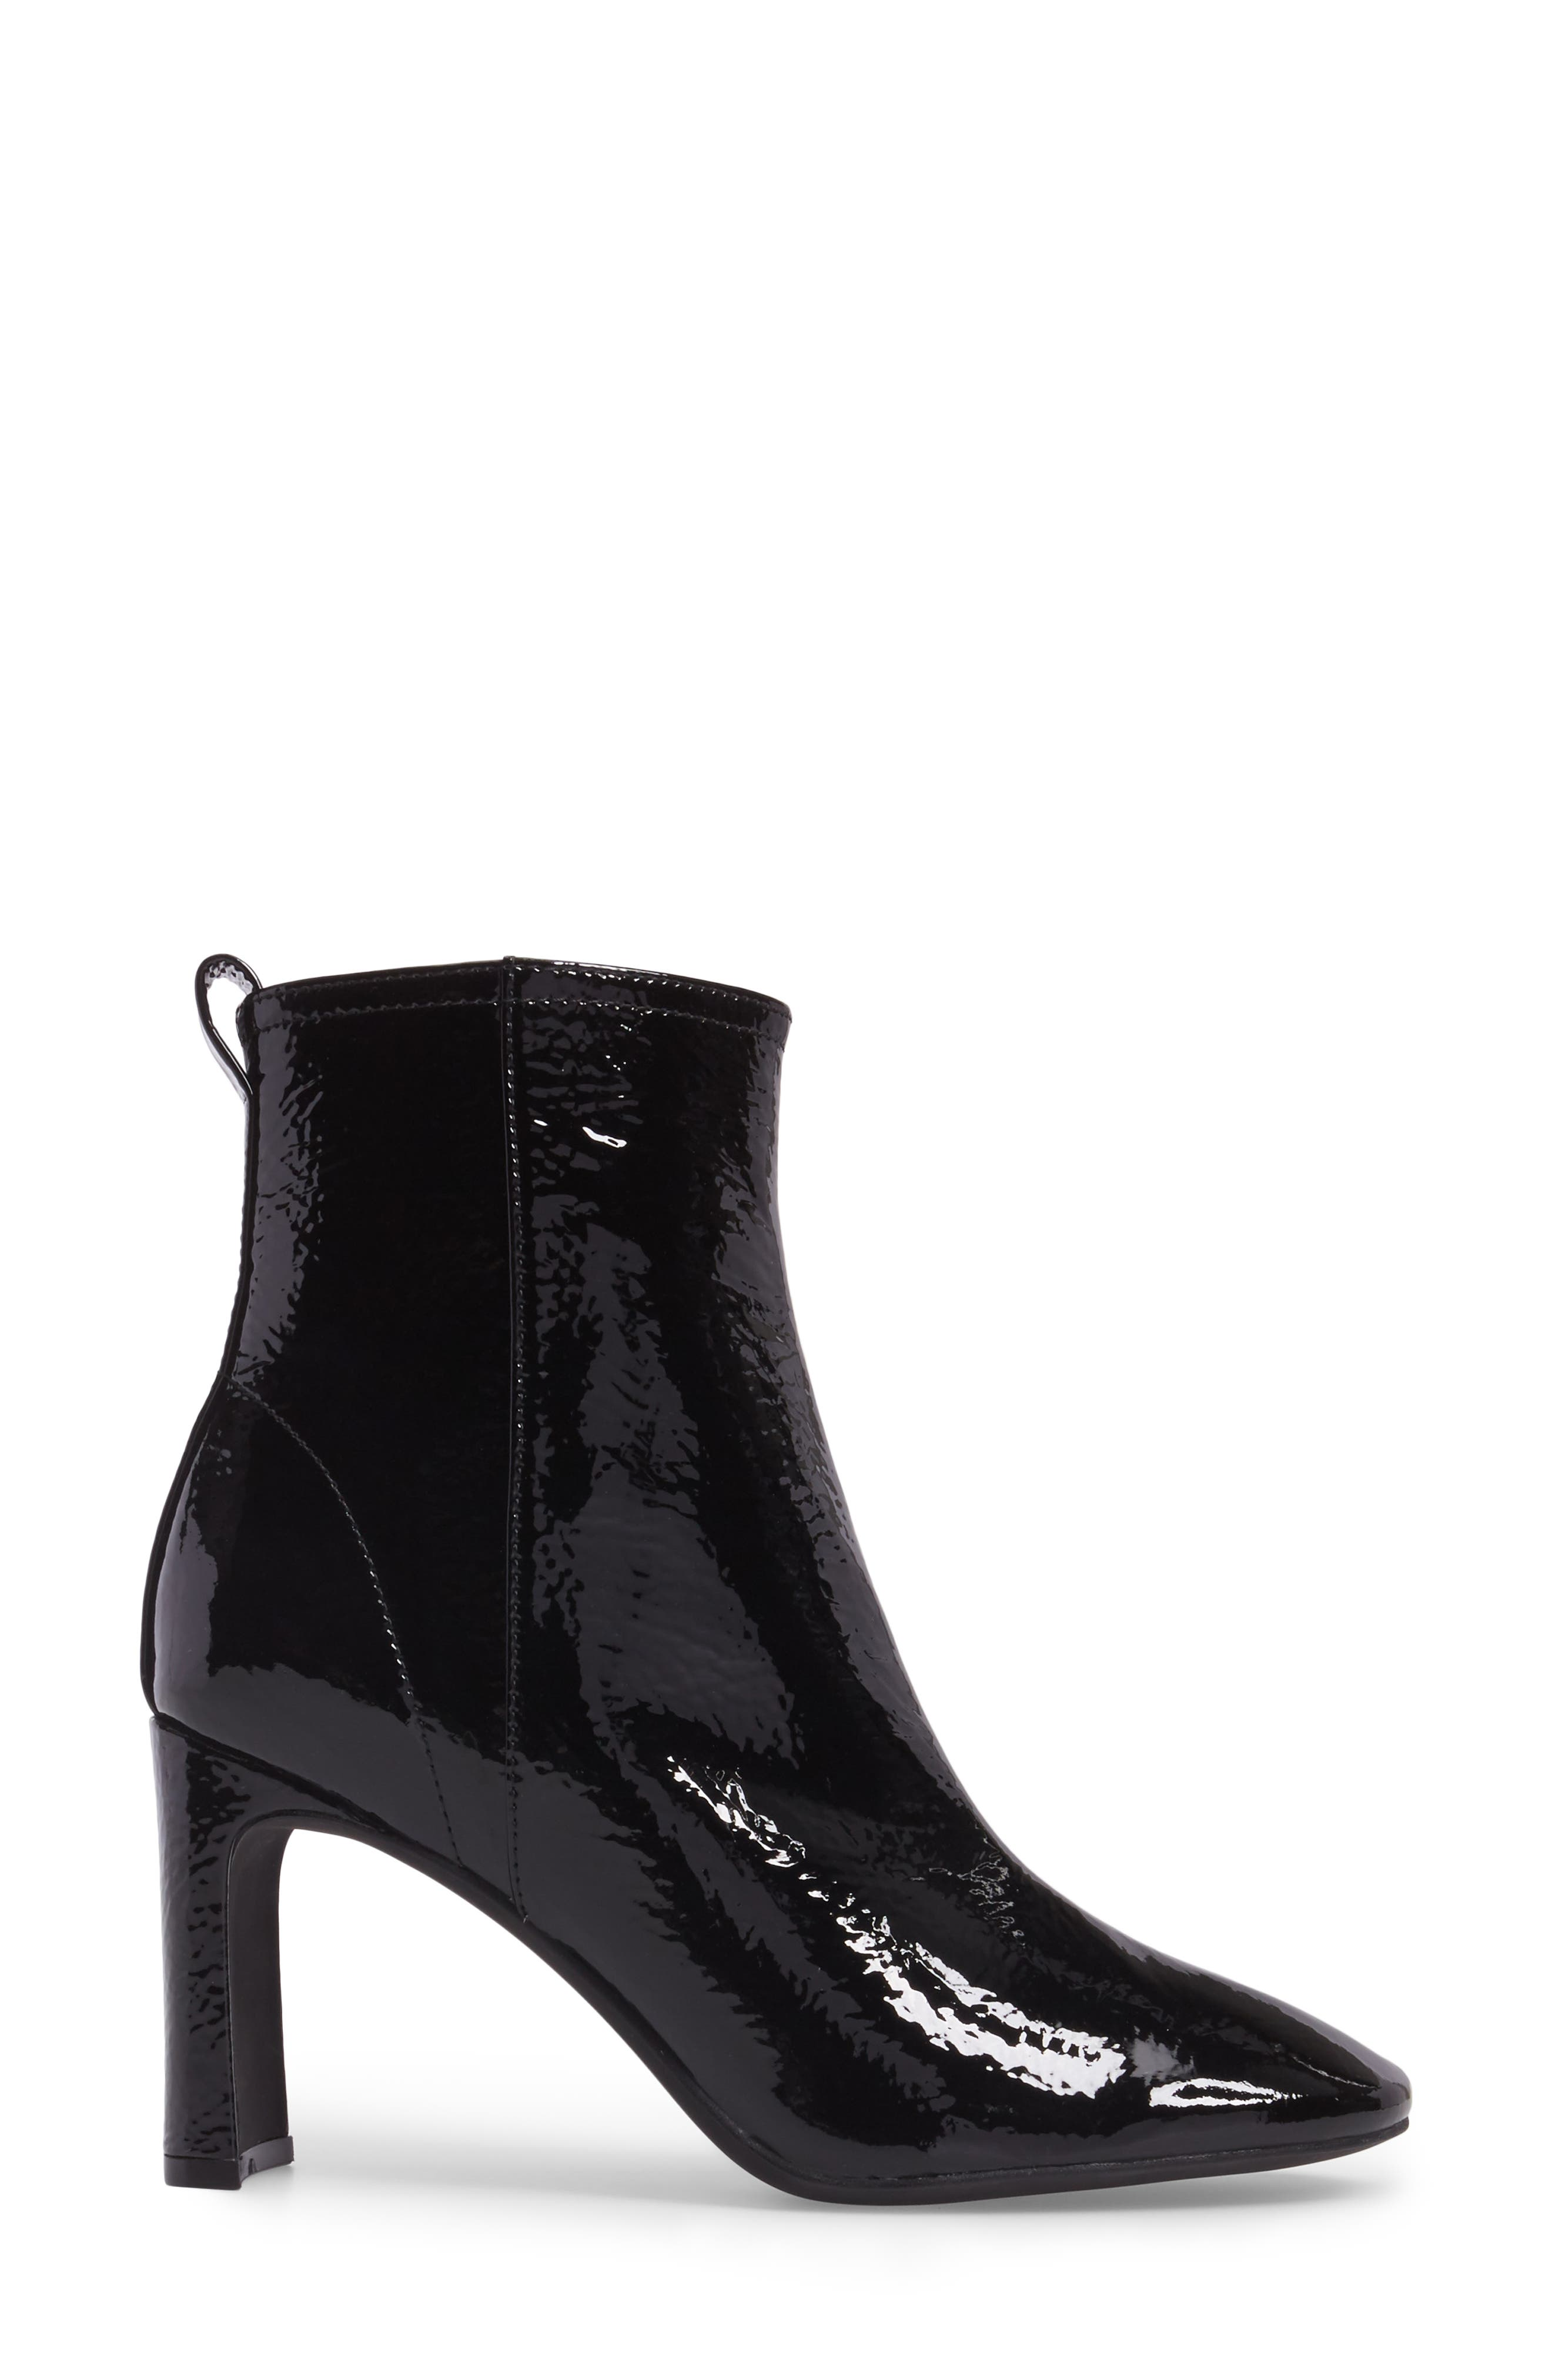 JEFFREY CAMPBELL,                             Chapel Curved Heel Bootie,                             Alternate thumbnail 3, color,                             012